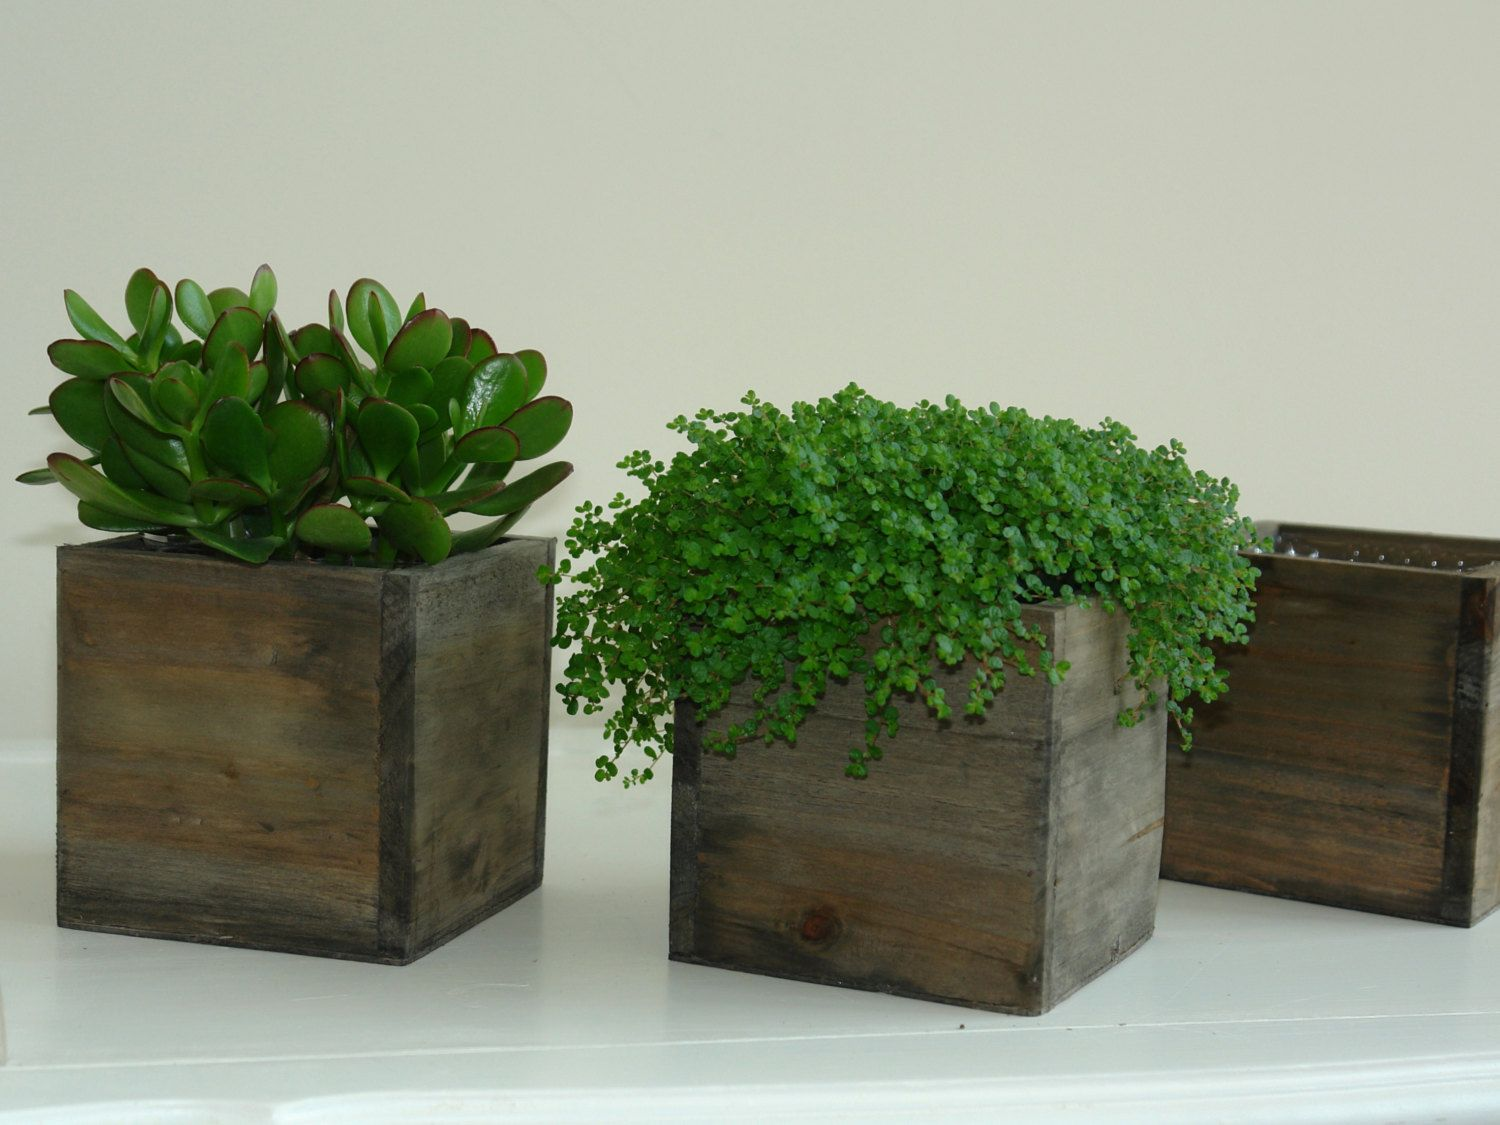 Woodland Planter Flower Box Rustic Pot Square Vases For Wedding Wooden Bo Chic By Aniamelisa On Etsy